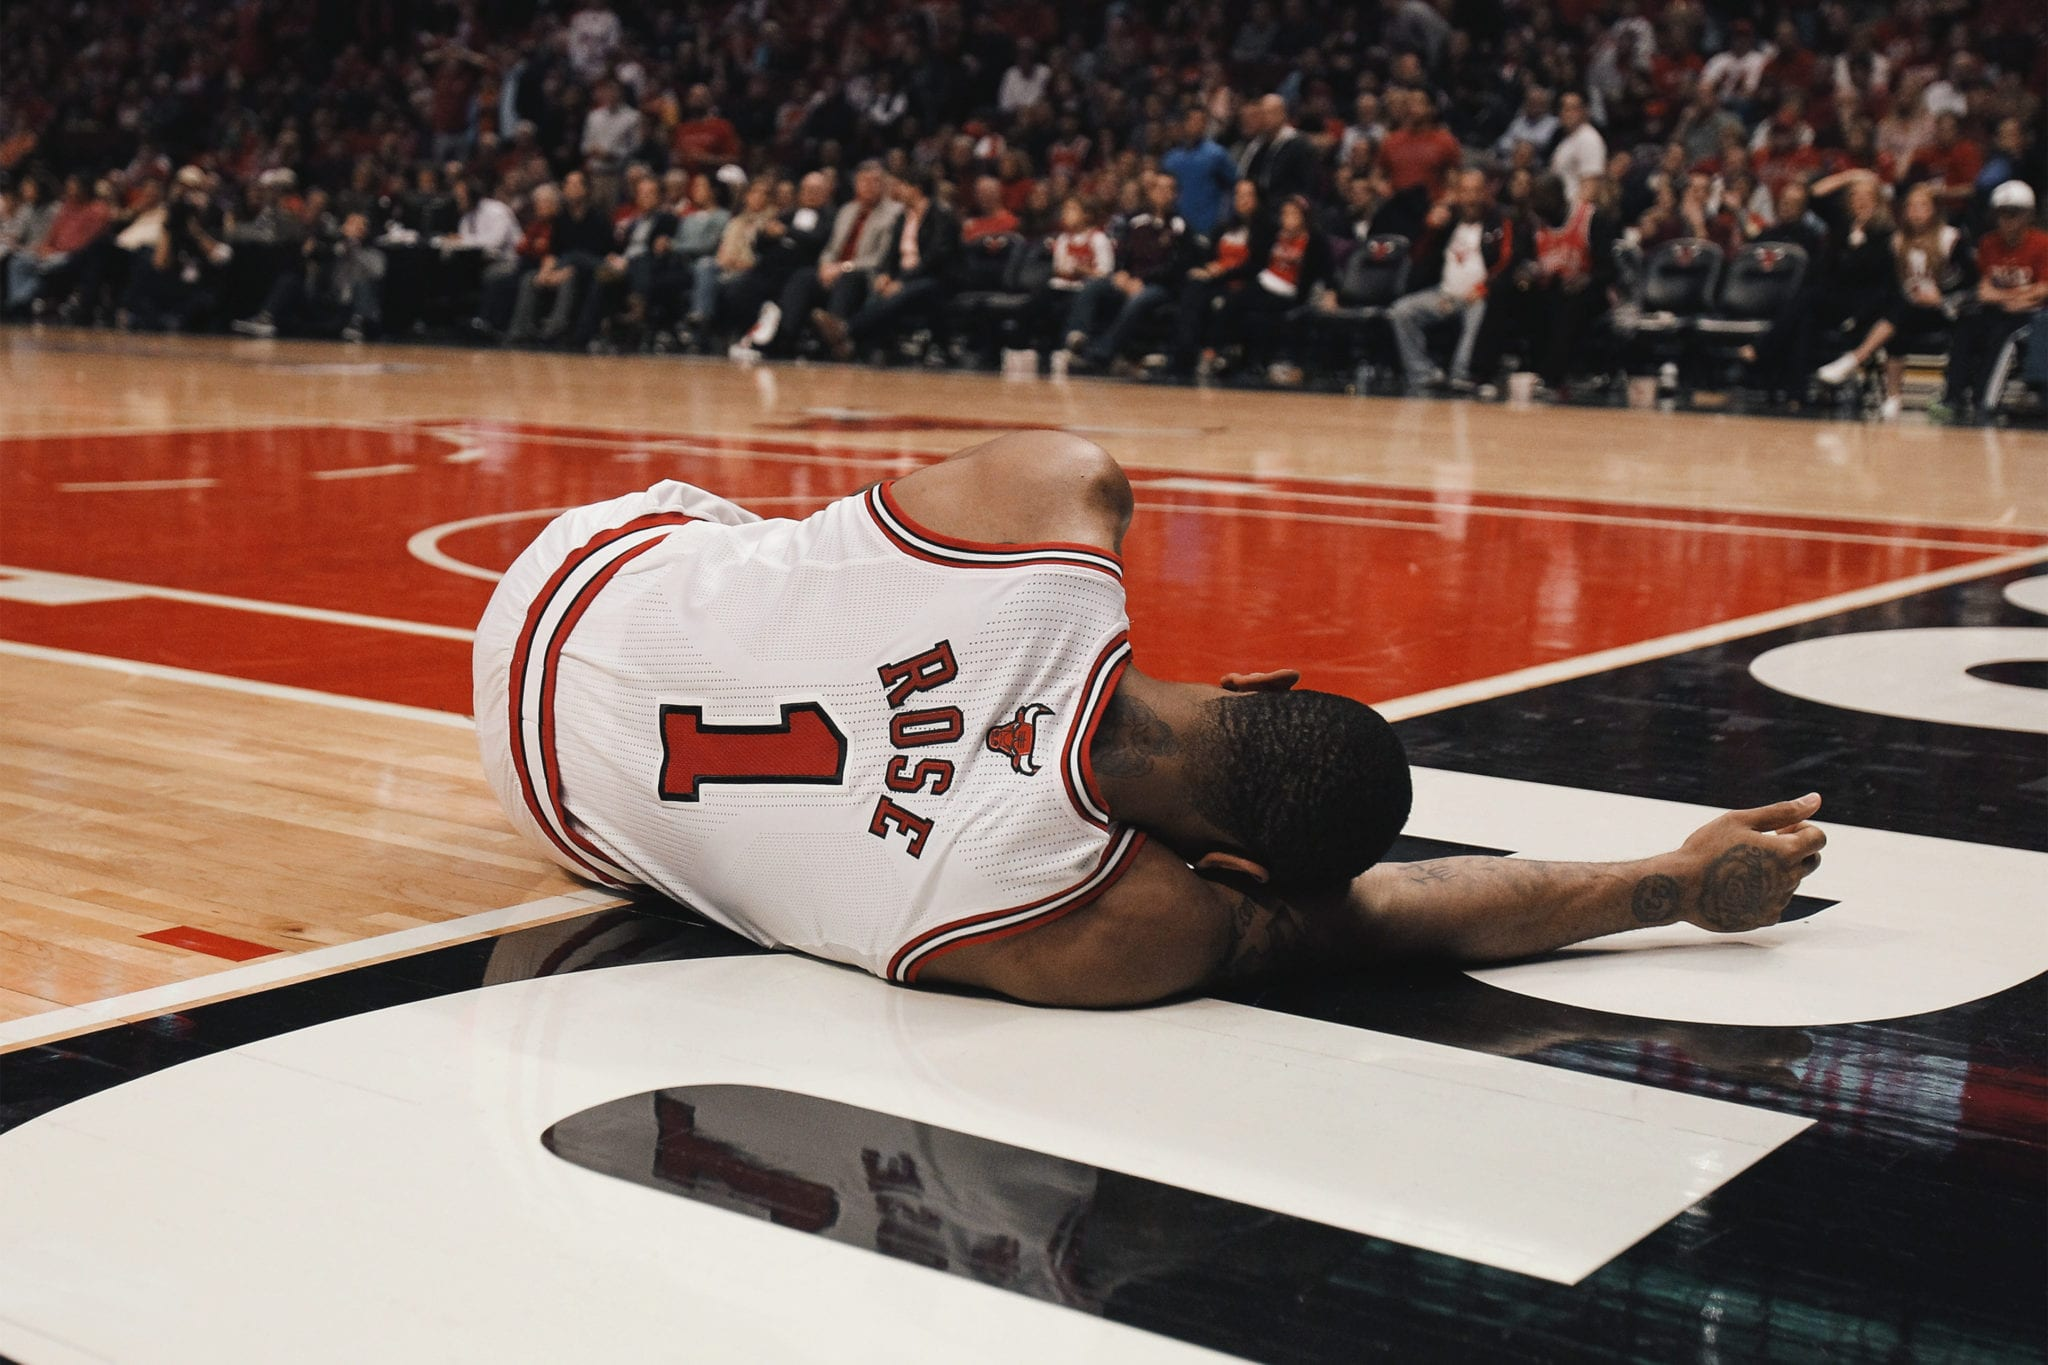 DEVASTATION: Derrick Rose in the moments after tearing his ACL in the second round of the 2012 Playoffs (April 28, 2012).